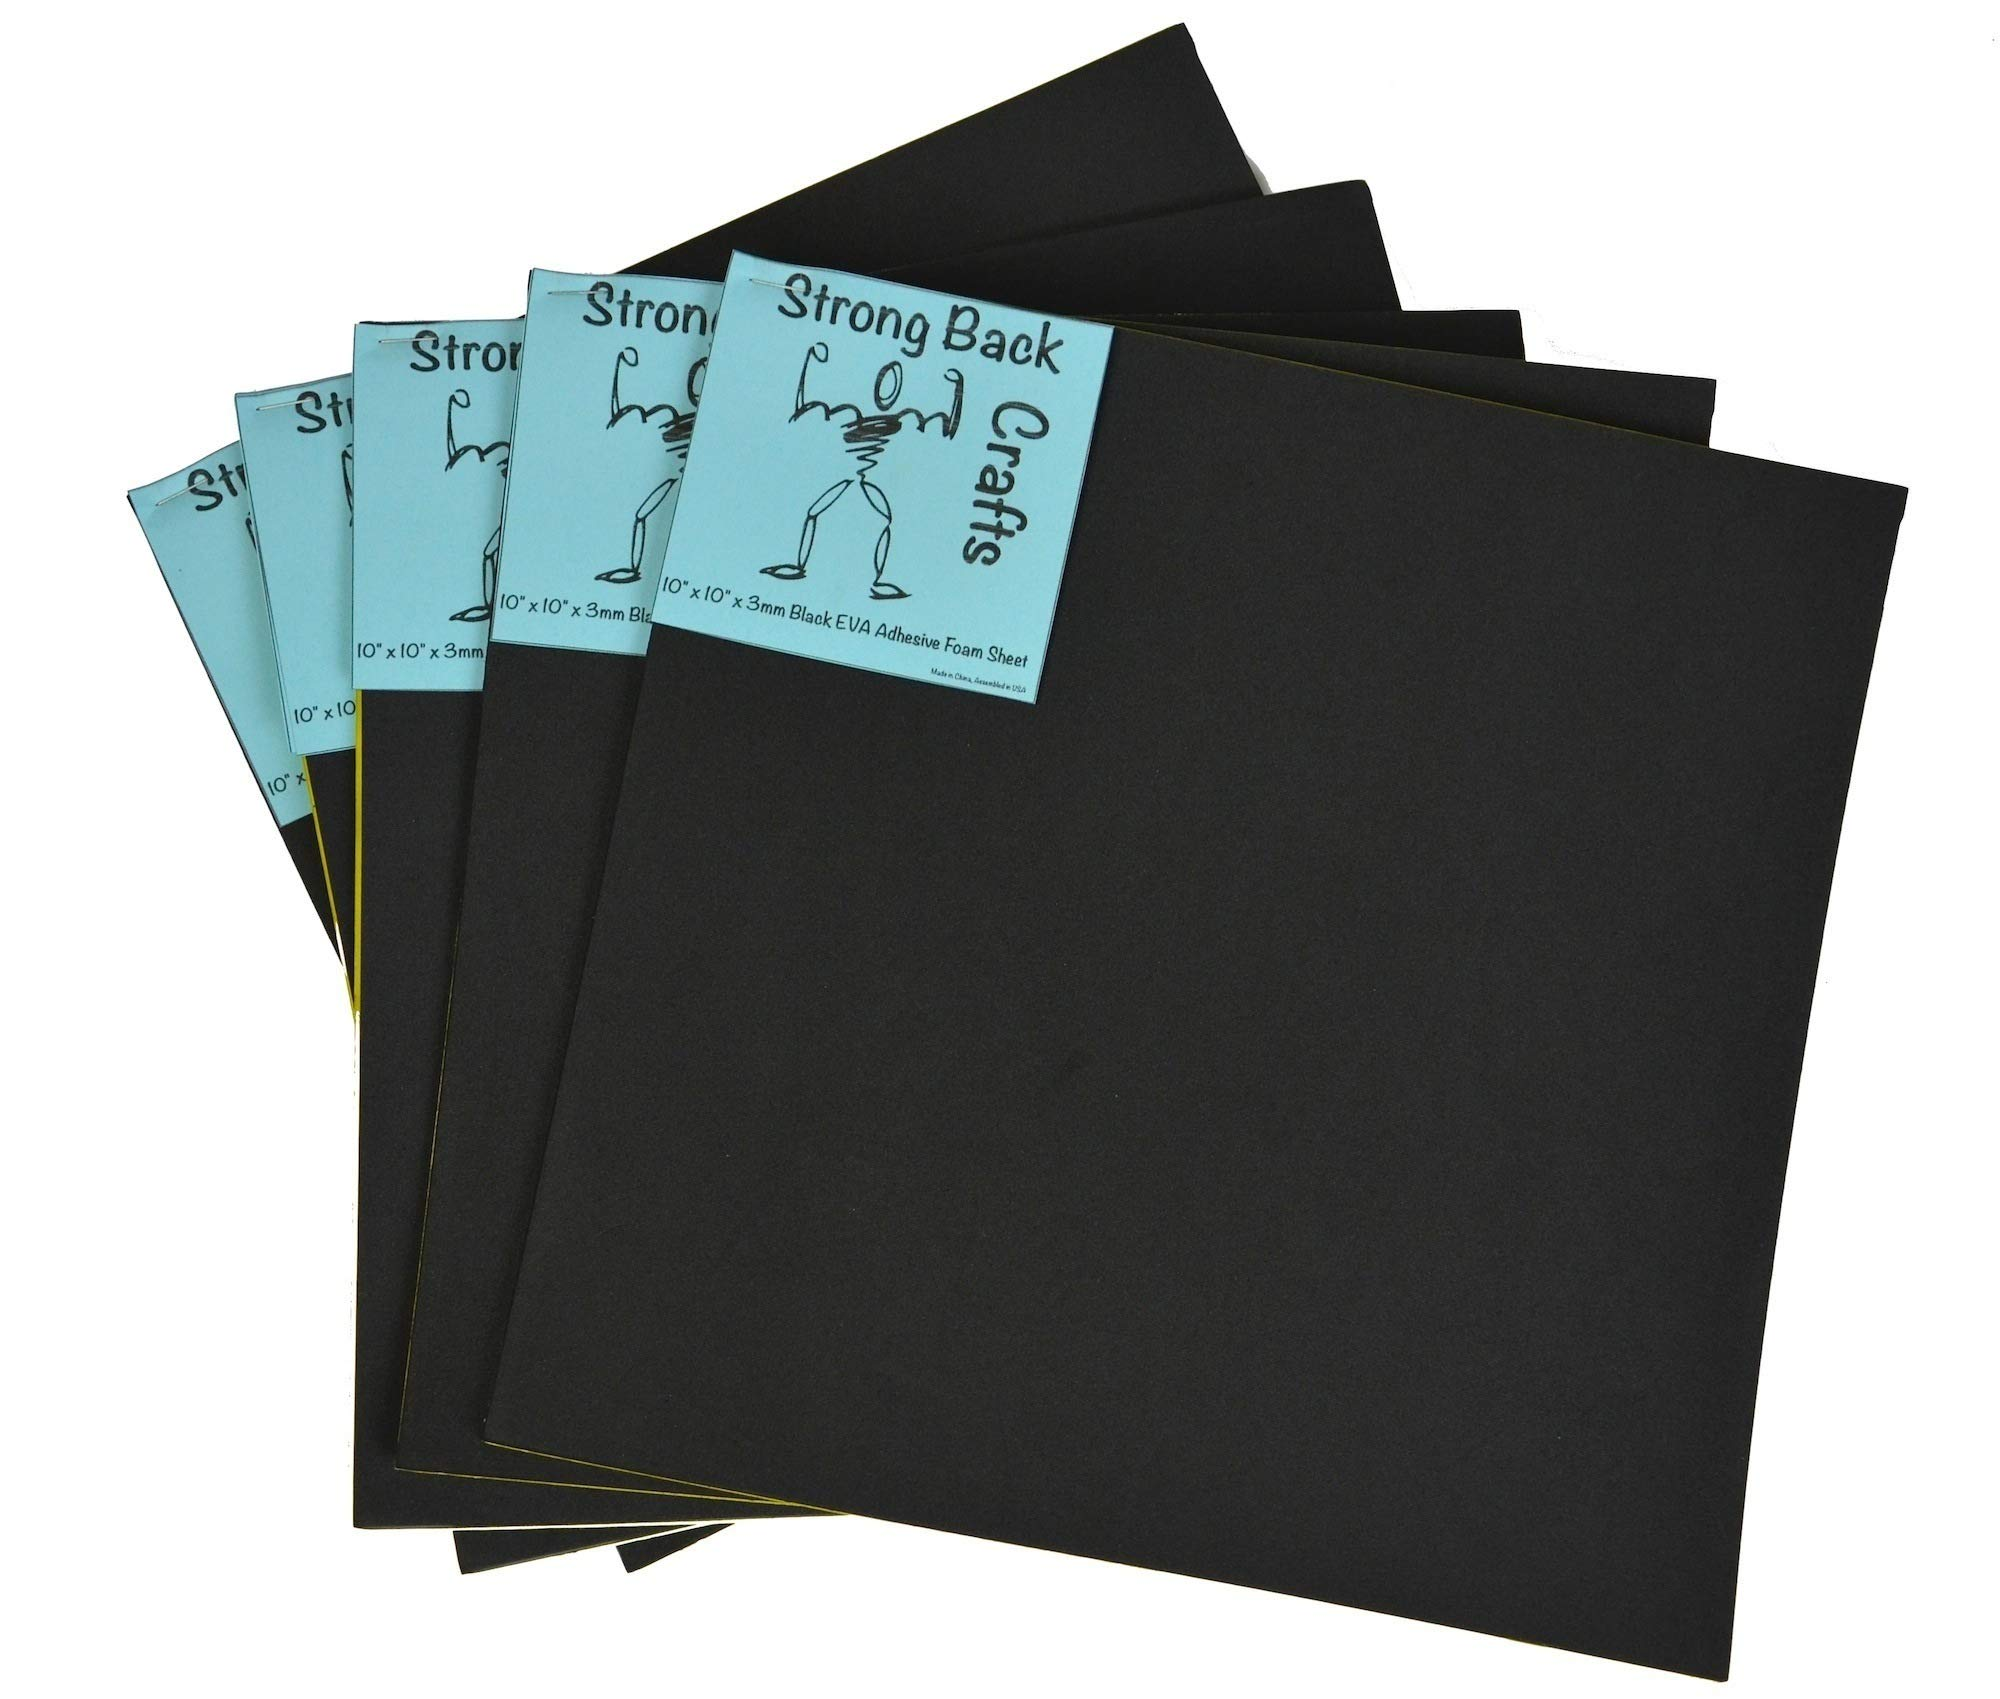 Black Self-stick Adhesive 10'' x 10'' EVA High Density Foam Sheets (5 Pack) 3mm by Strong Back Crafts- for canoe & kayak seats & traction pads, dog traction for cars, scrapbooking, arm & wrist rests